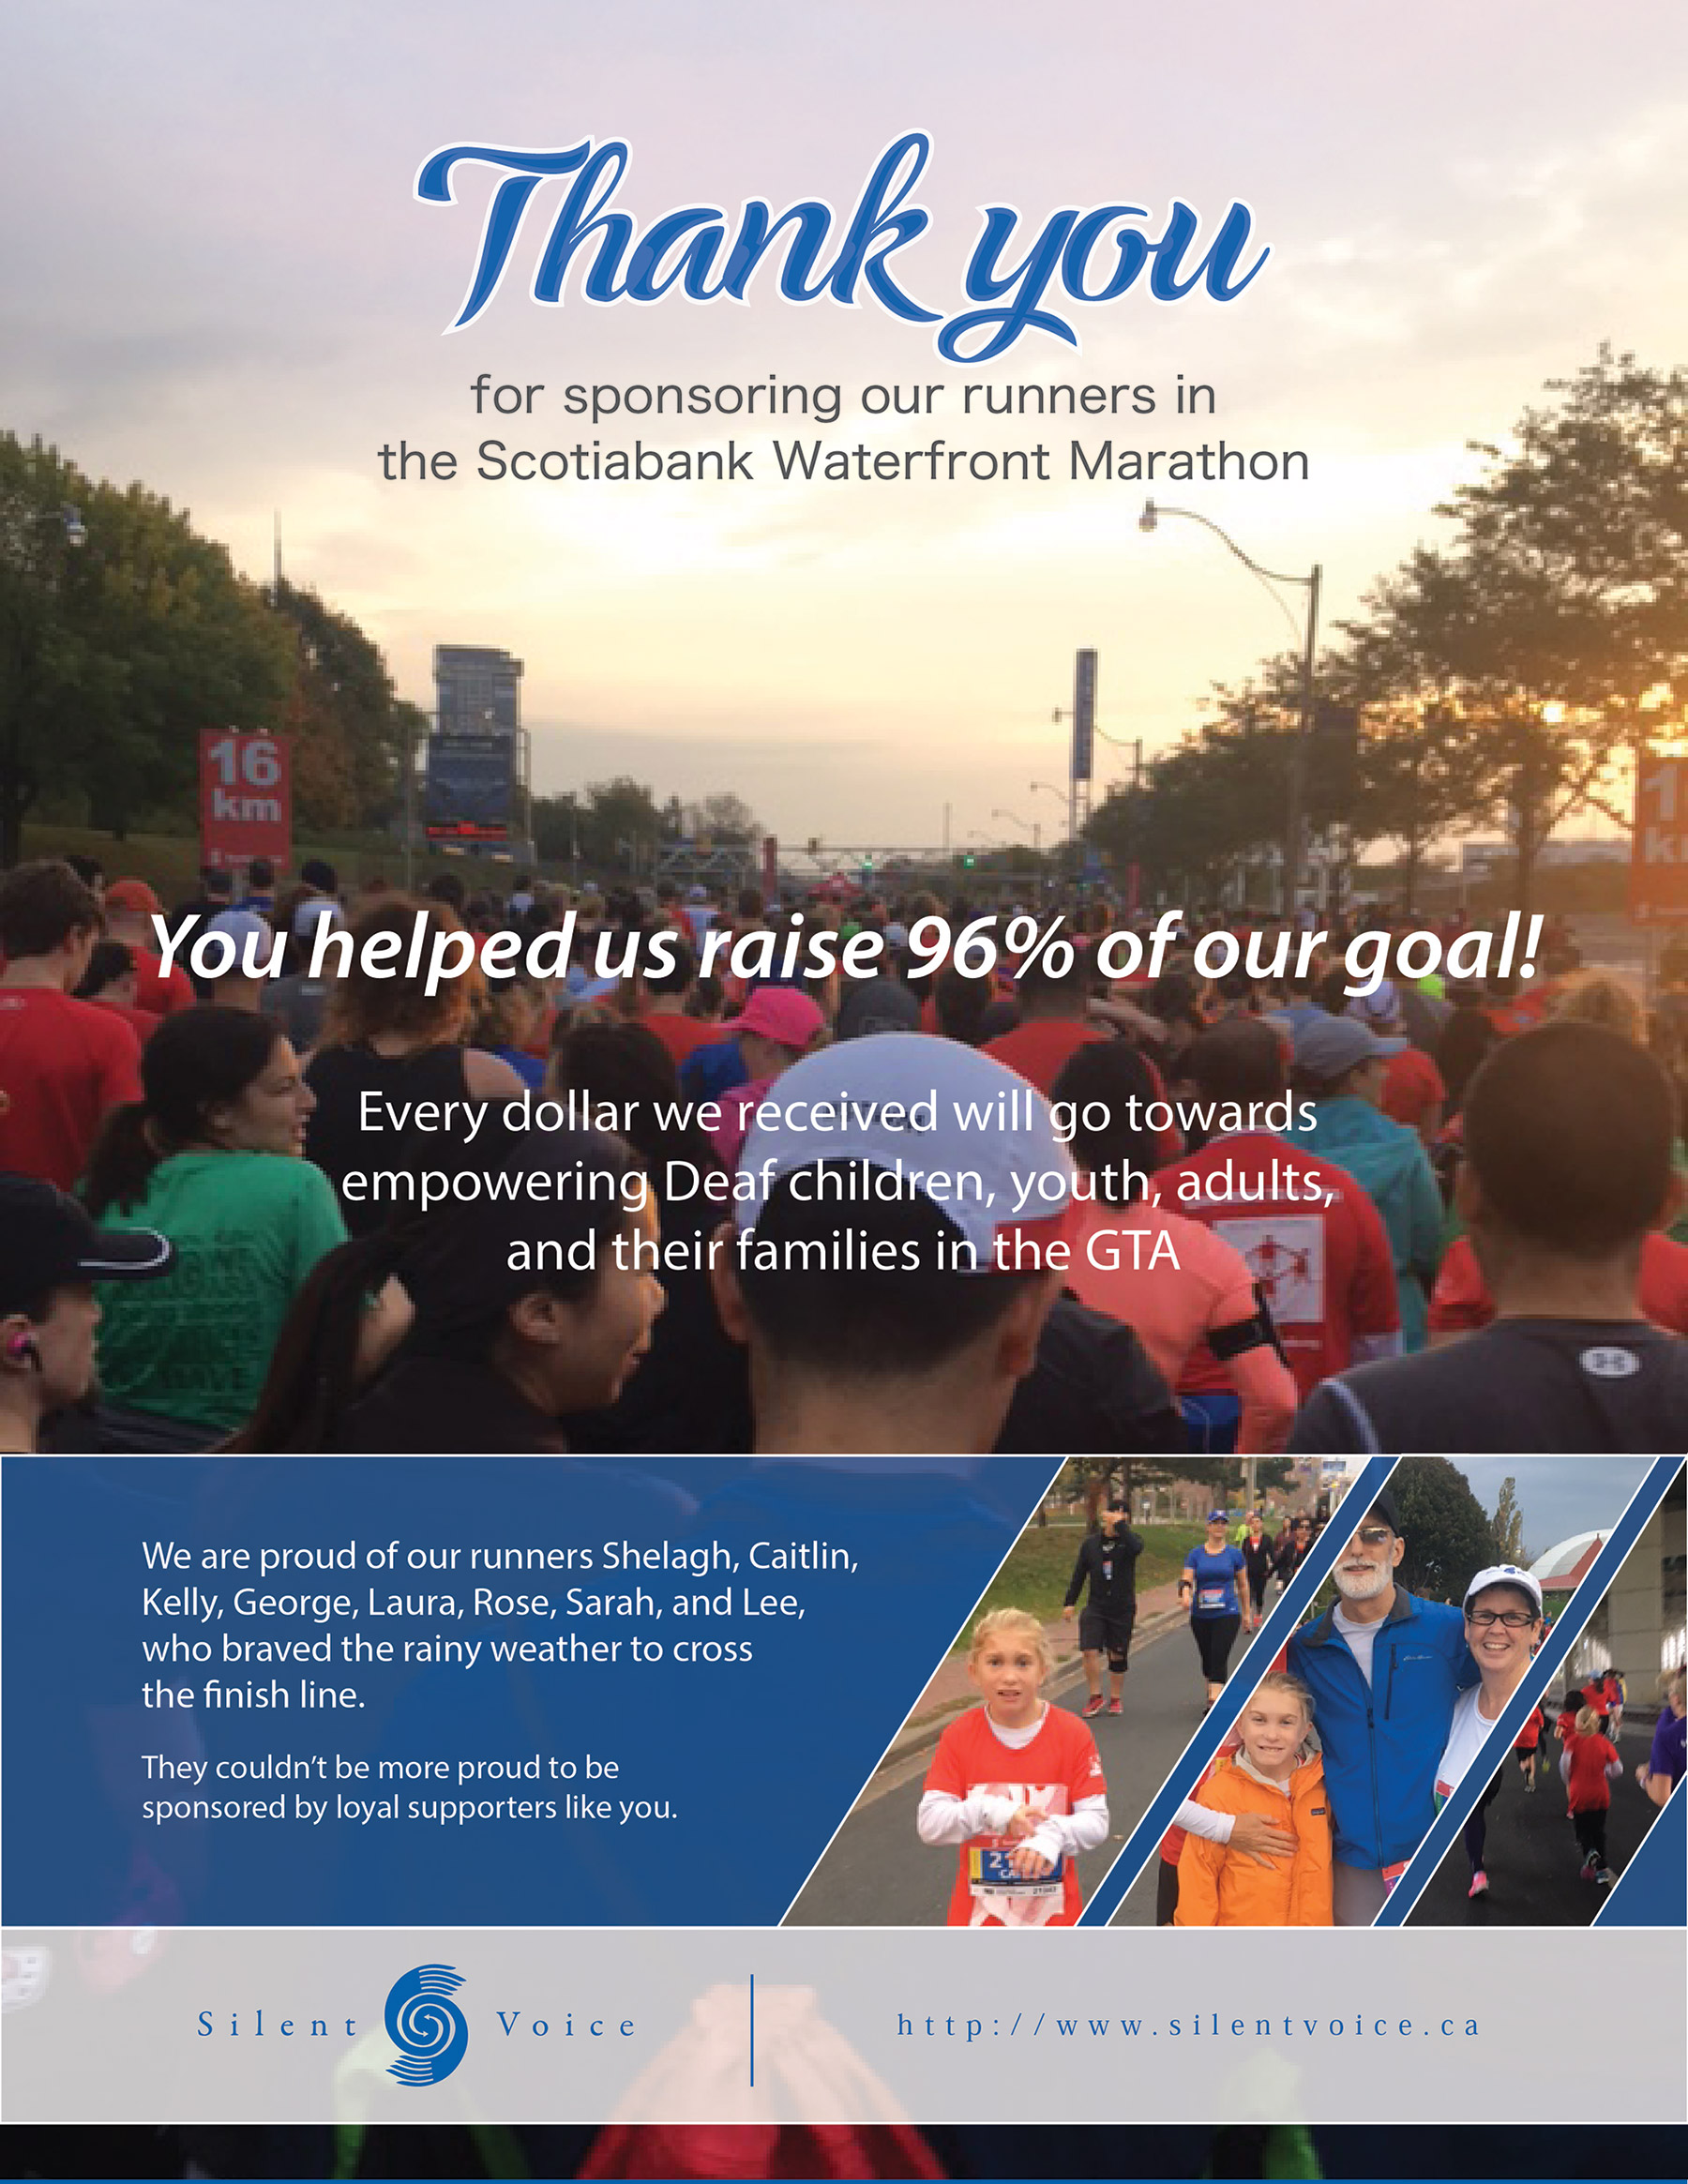 Thank You for sponsoring our runners in the Scotiabank Waterfront Marathon